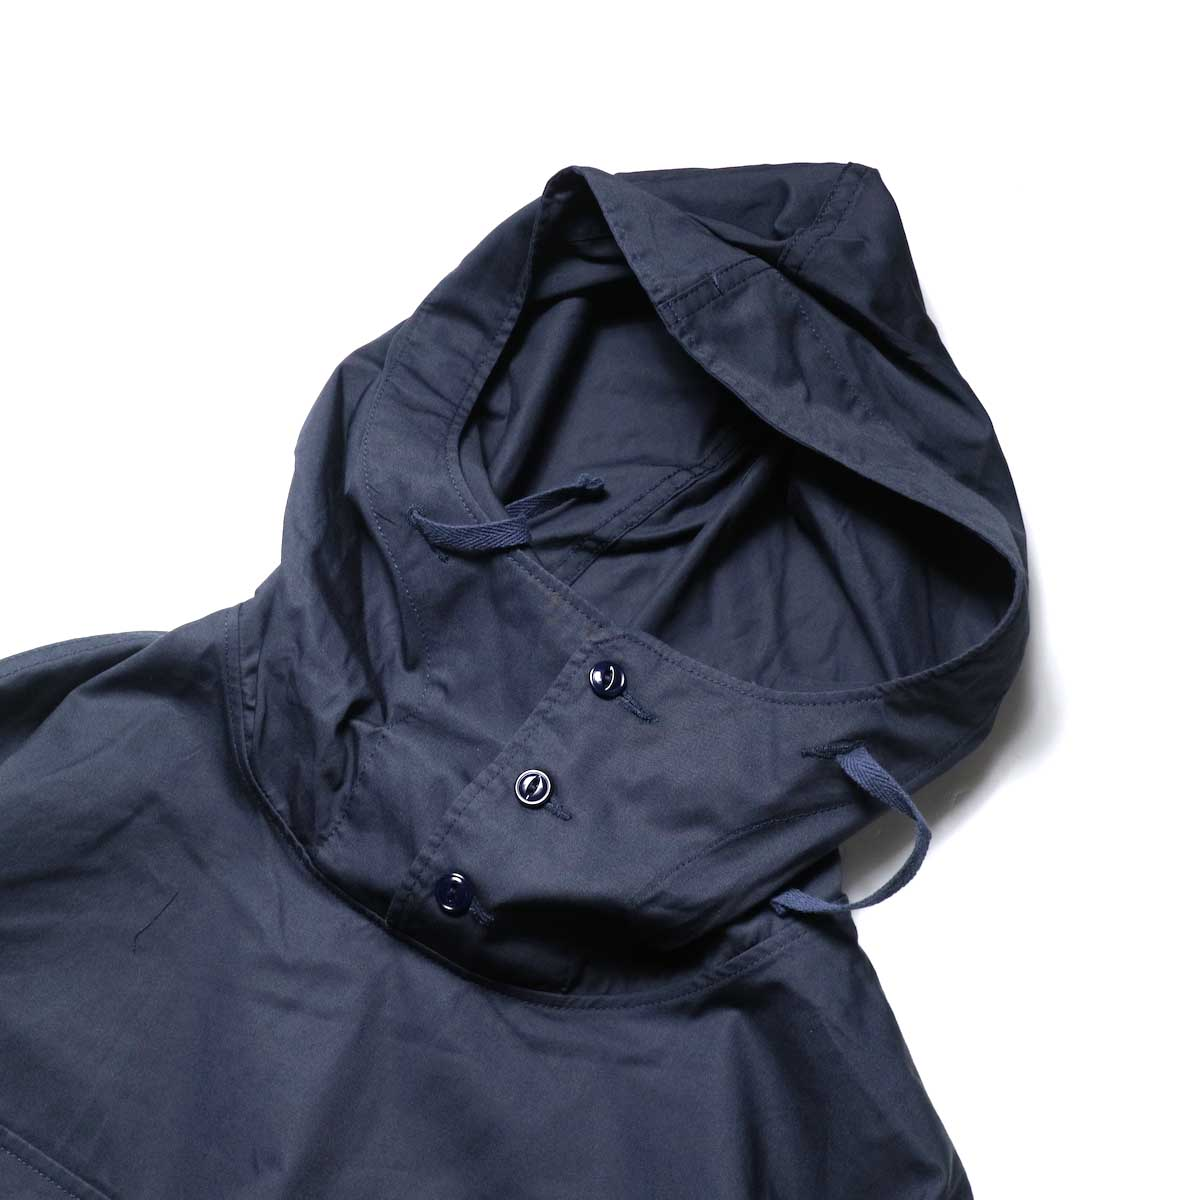 Engineered Garments / Cagoule Shirt -High Count Twill (Dk.Navy)フード